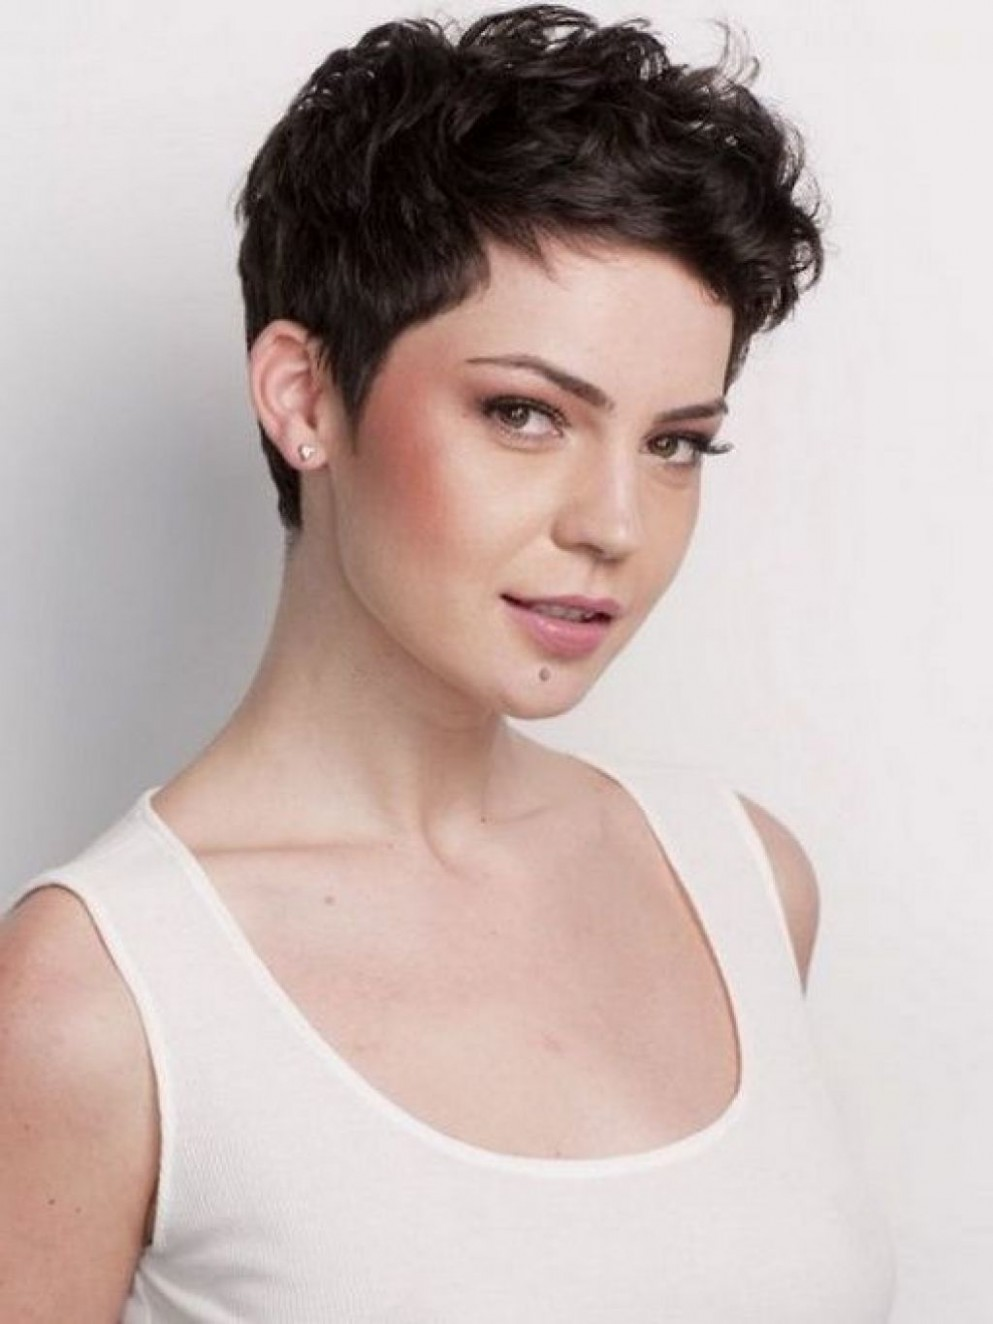 Pin On Short Pixie Haircuts Pixie Cut For Thick Wavy Hair